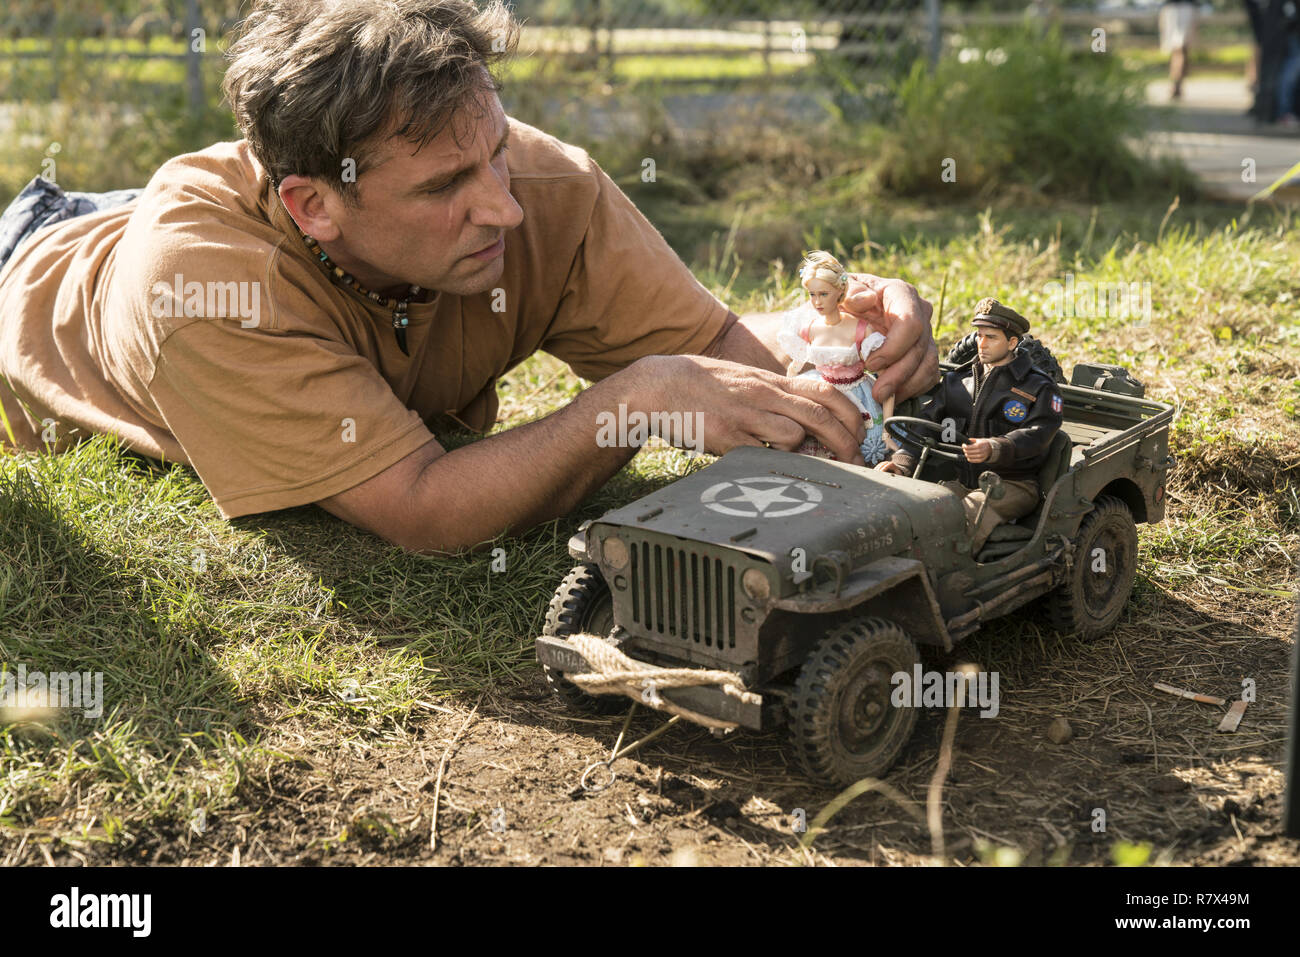 Steve Carell as Mark Hogancamp photographs the dolls for his fictional town in 'Welcome to Marwen,' directed by Robert Zemeckis.  Photo Credit: Universal Pictures and Storyteller Distribution Co., LLC. / The Hollywood Archive - Stock Image